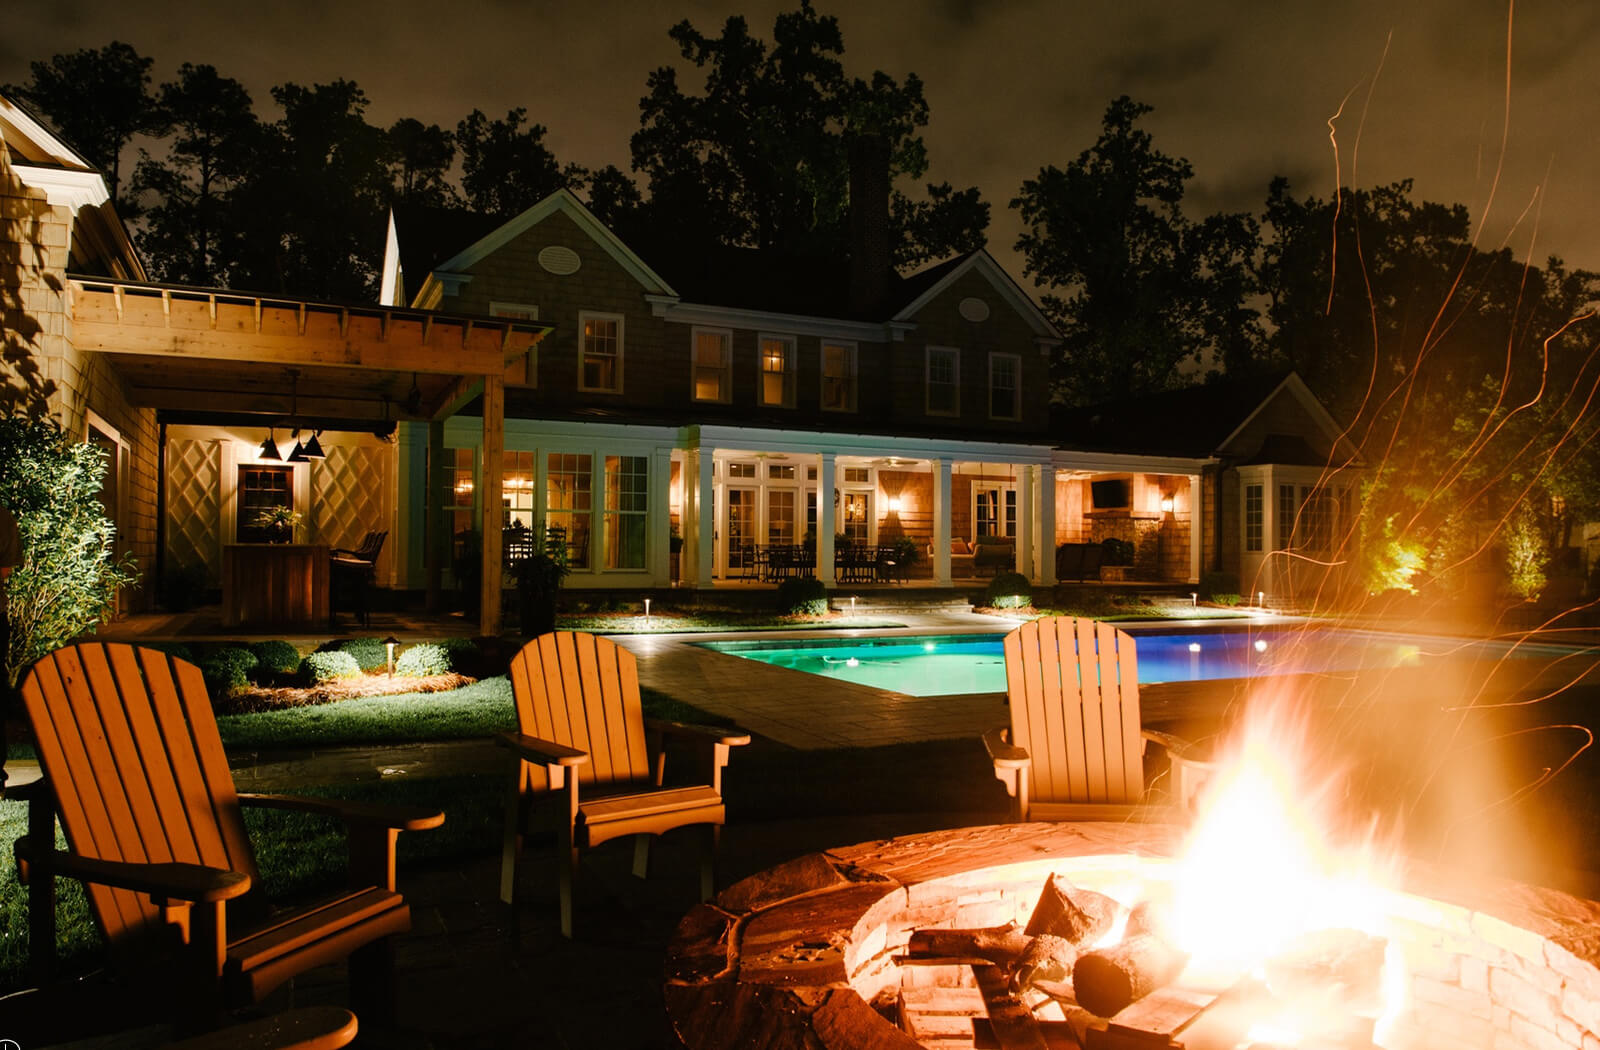 Outdoor lighting for patio and pool